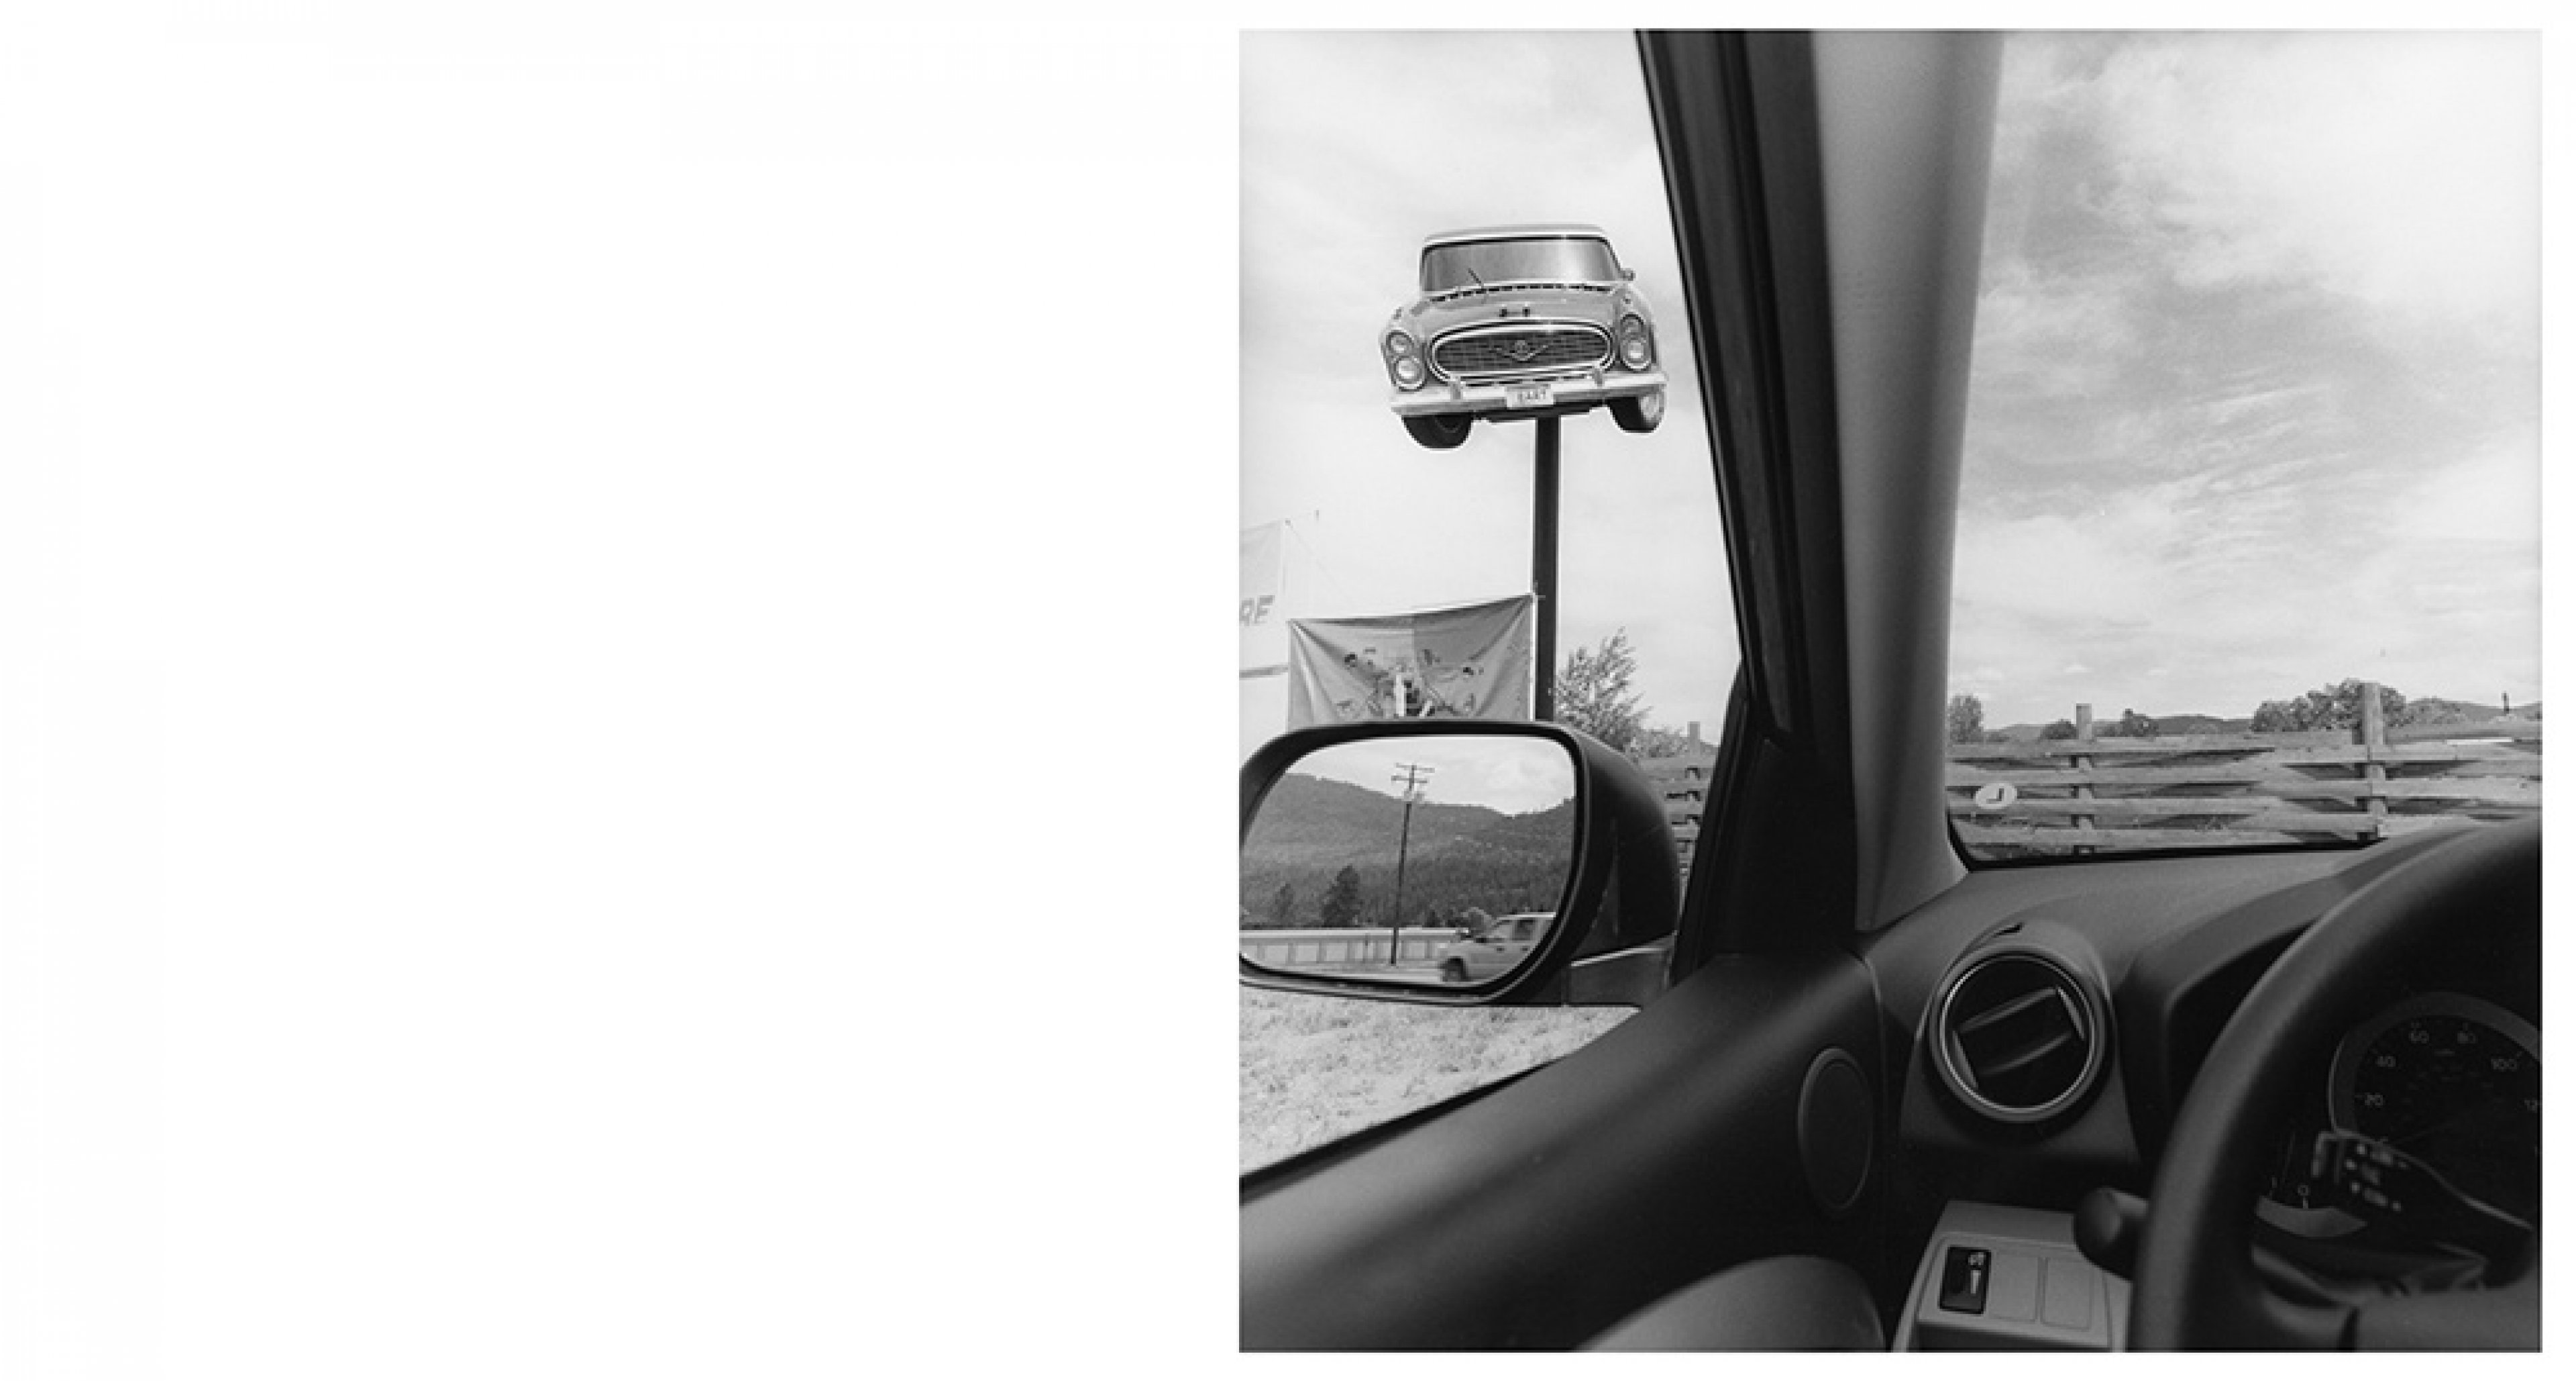 Lee Friedlander, Montana, 2008 Série America by Car Tirage gélatino-argentique, 37,5 × 37,5 cm Courtesy Fraenkel Gallery, San Francisco © Lee Friedlander, courtesy Fraenkel Gallery, San Francisco